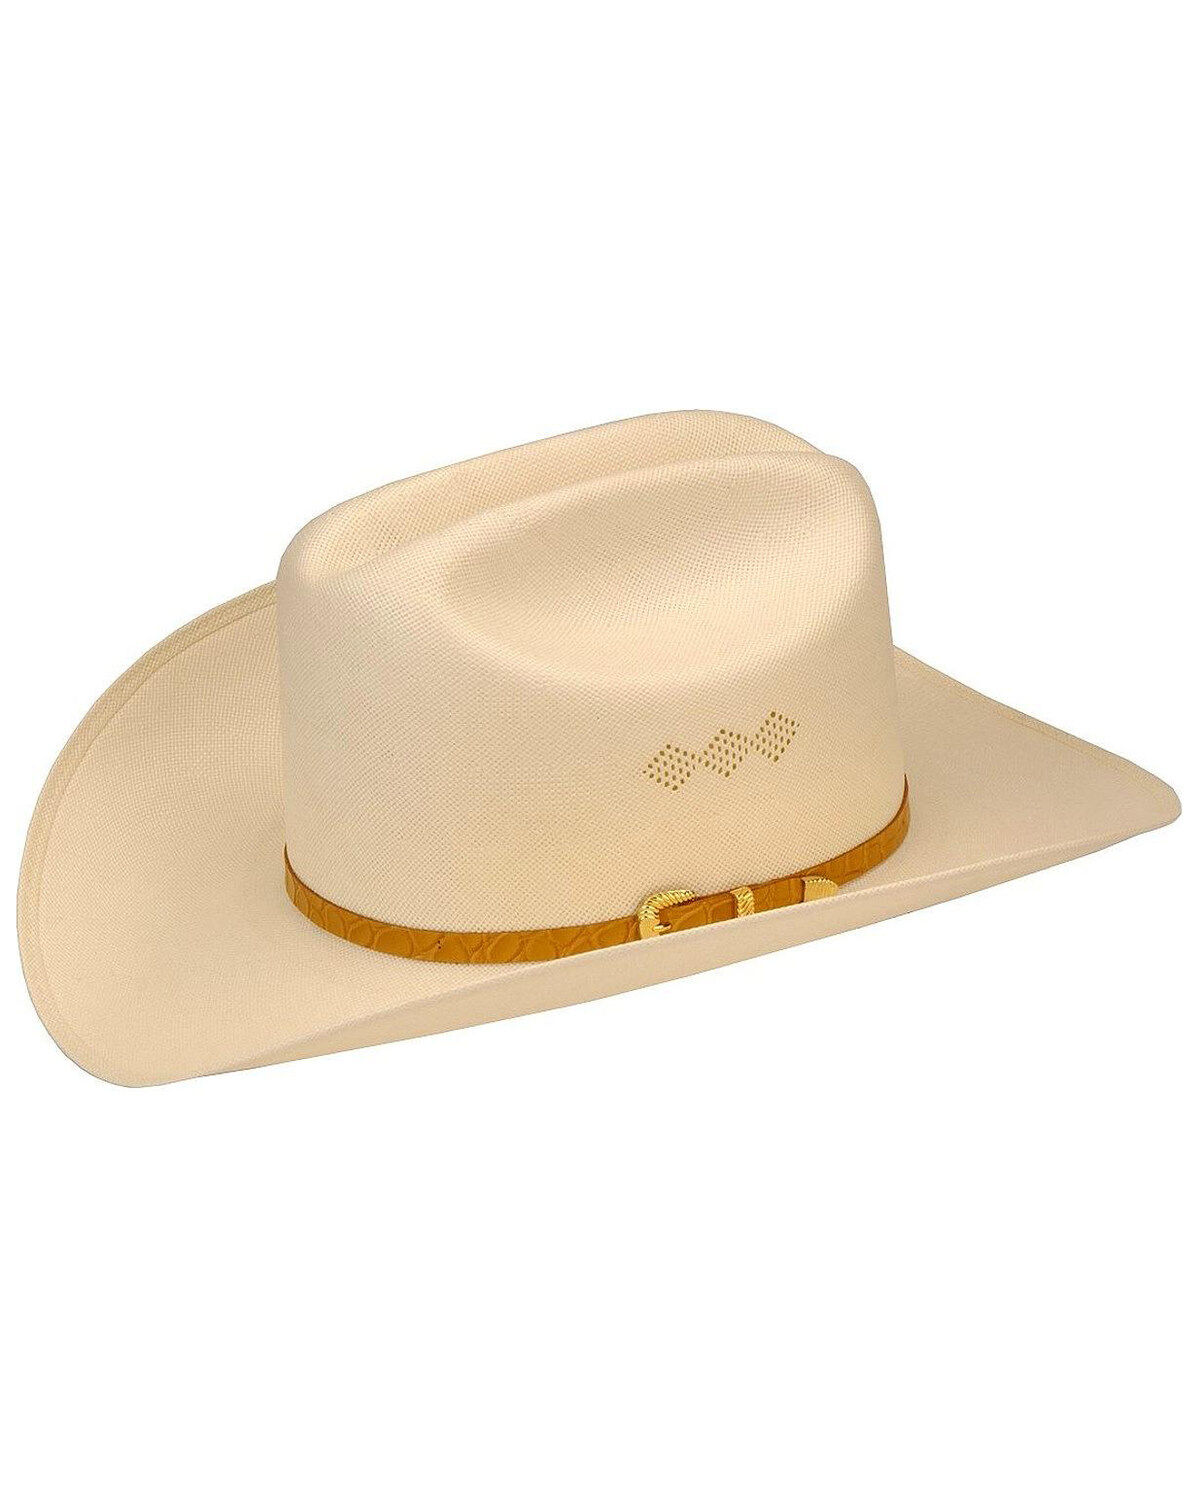 02d632ce95569 Men s Straw Western Hats